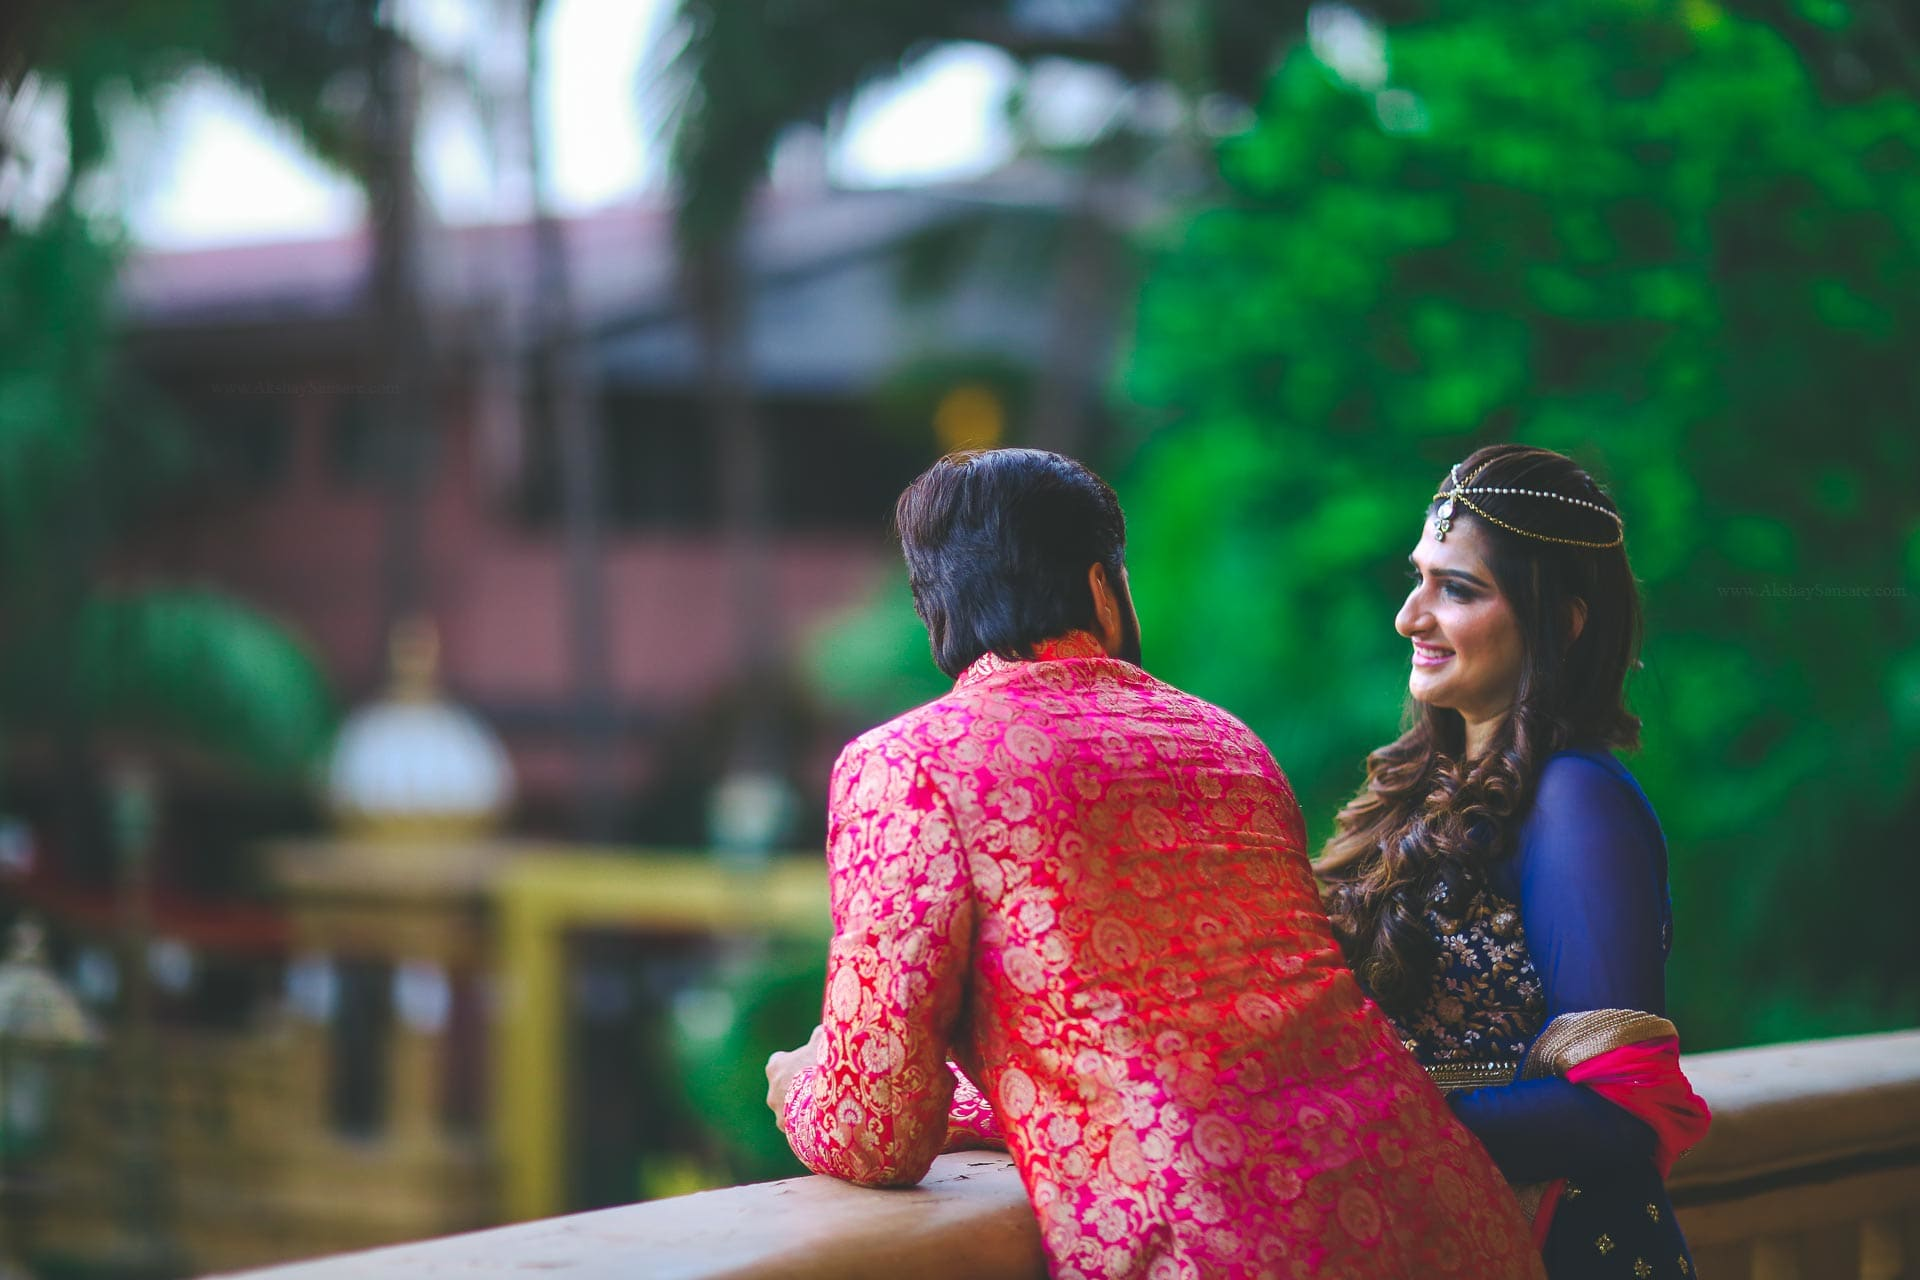 the lovebirds!:akshay sansare photography and films